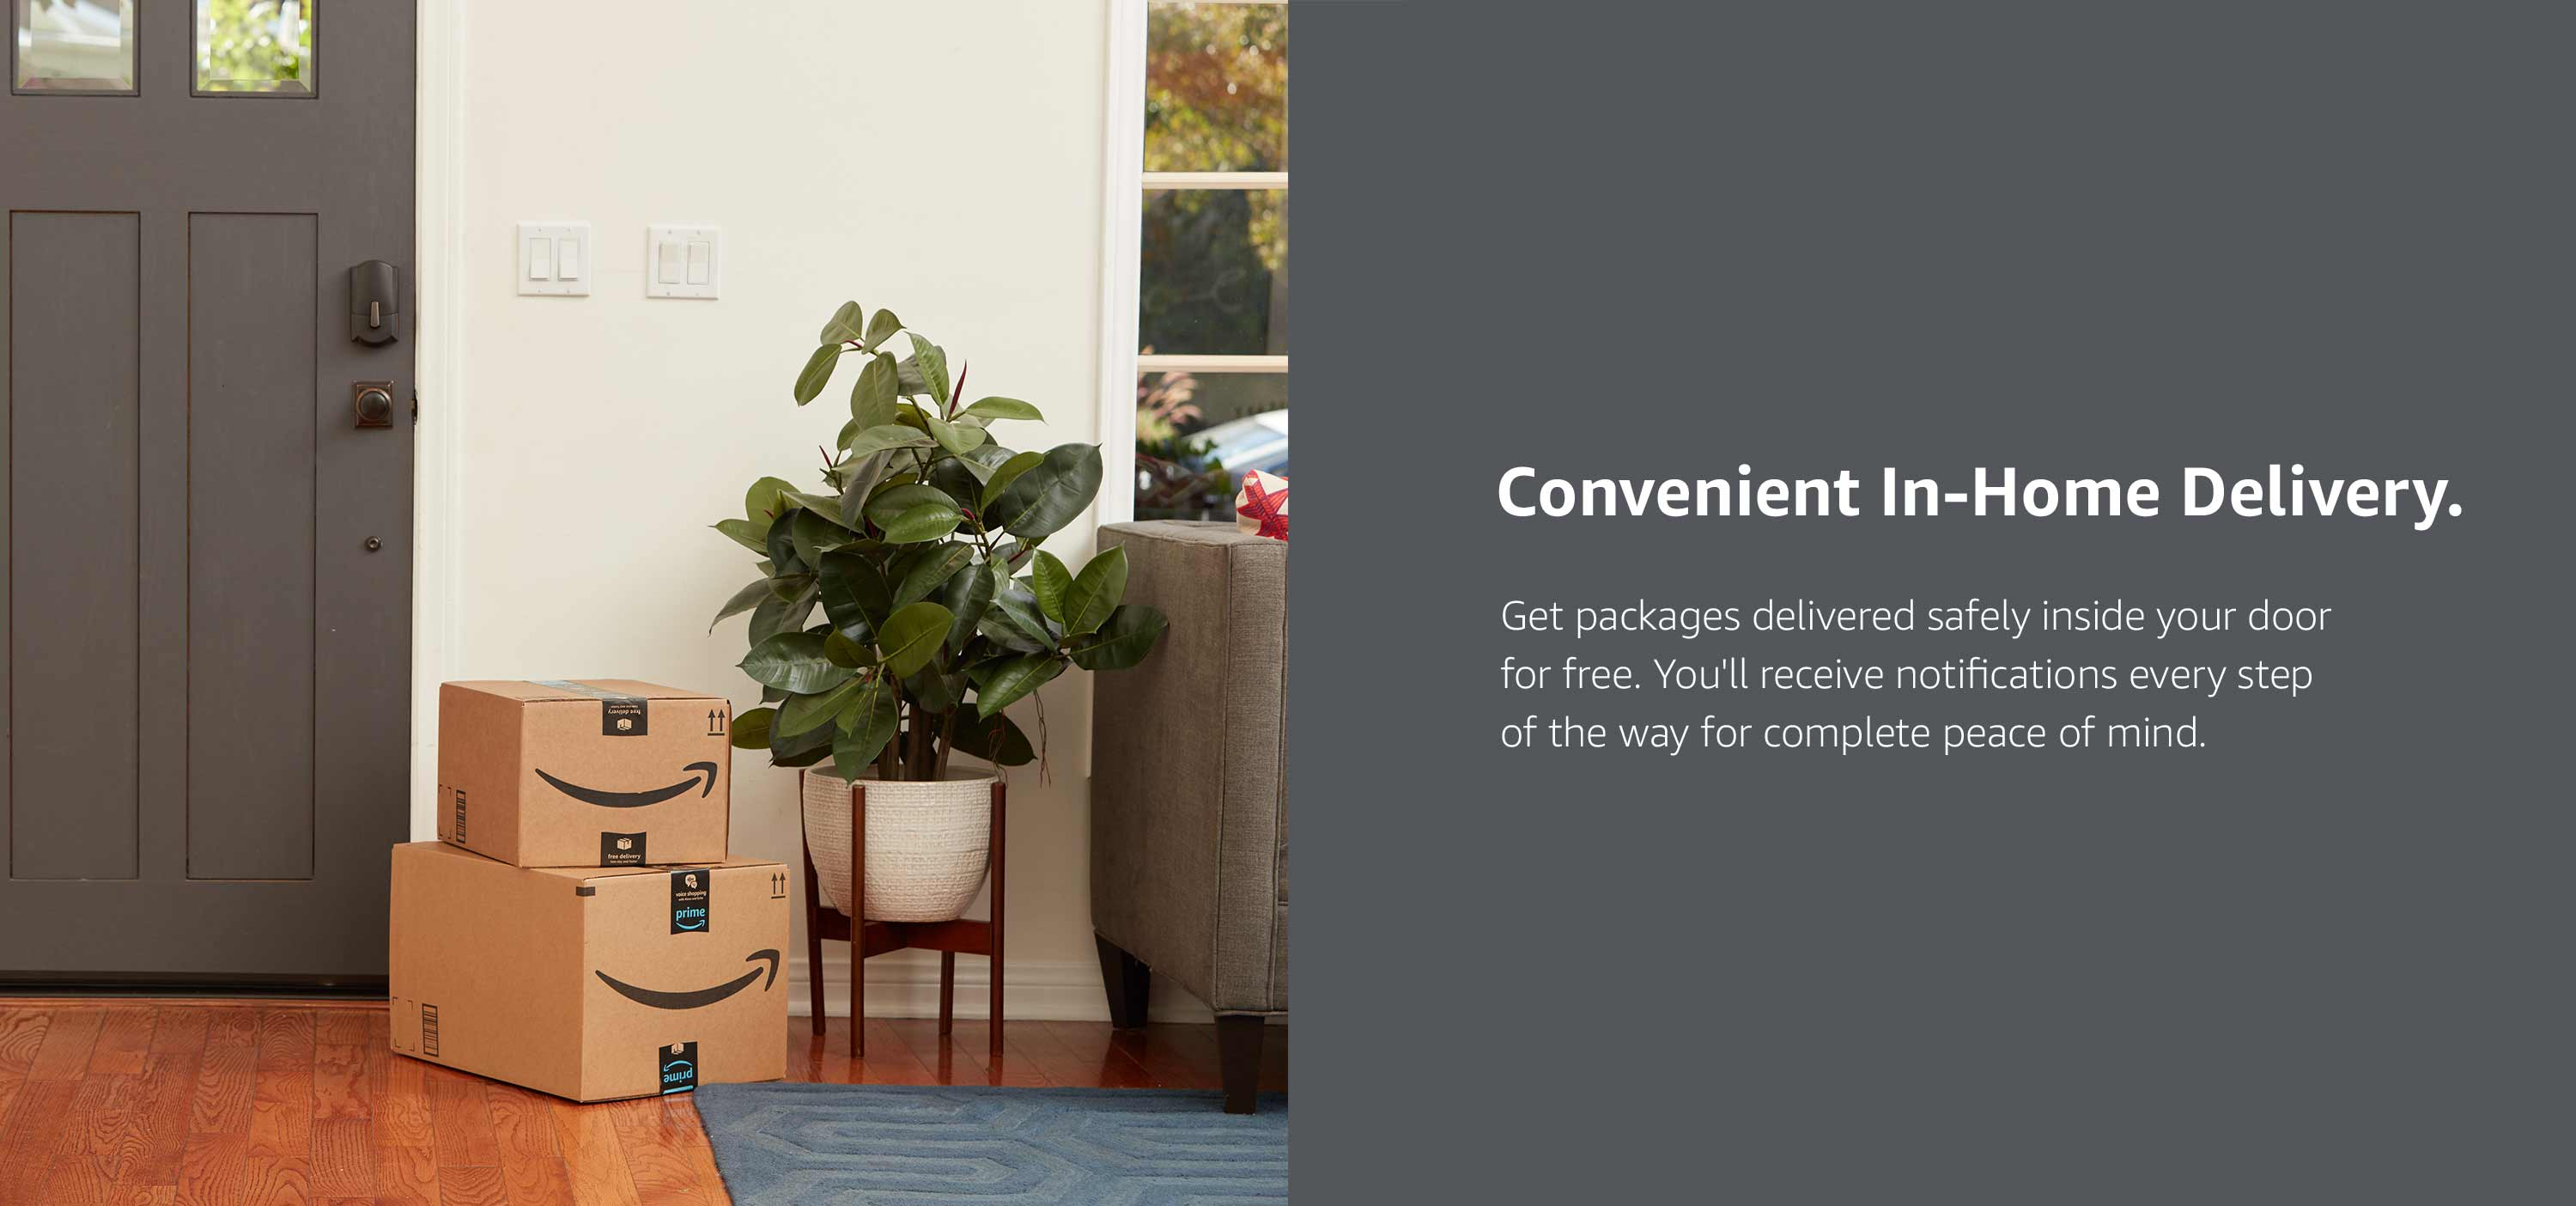 Convenient in-home delivery.